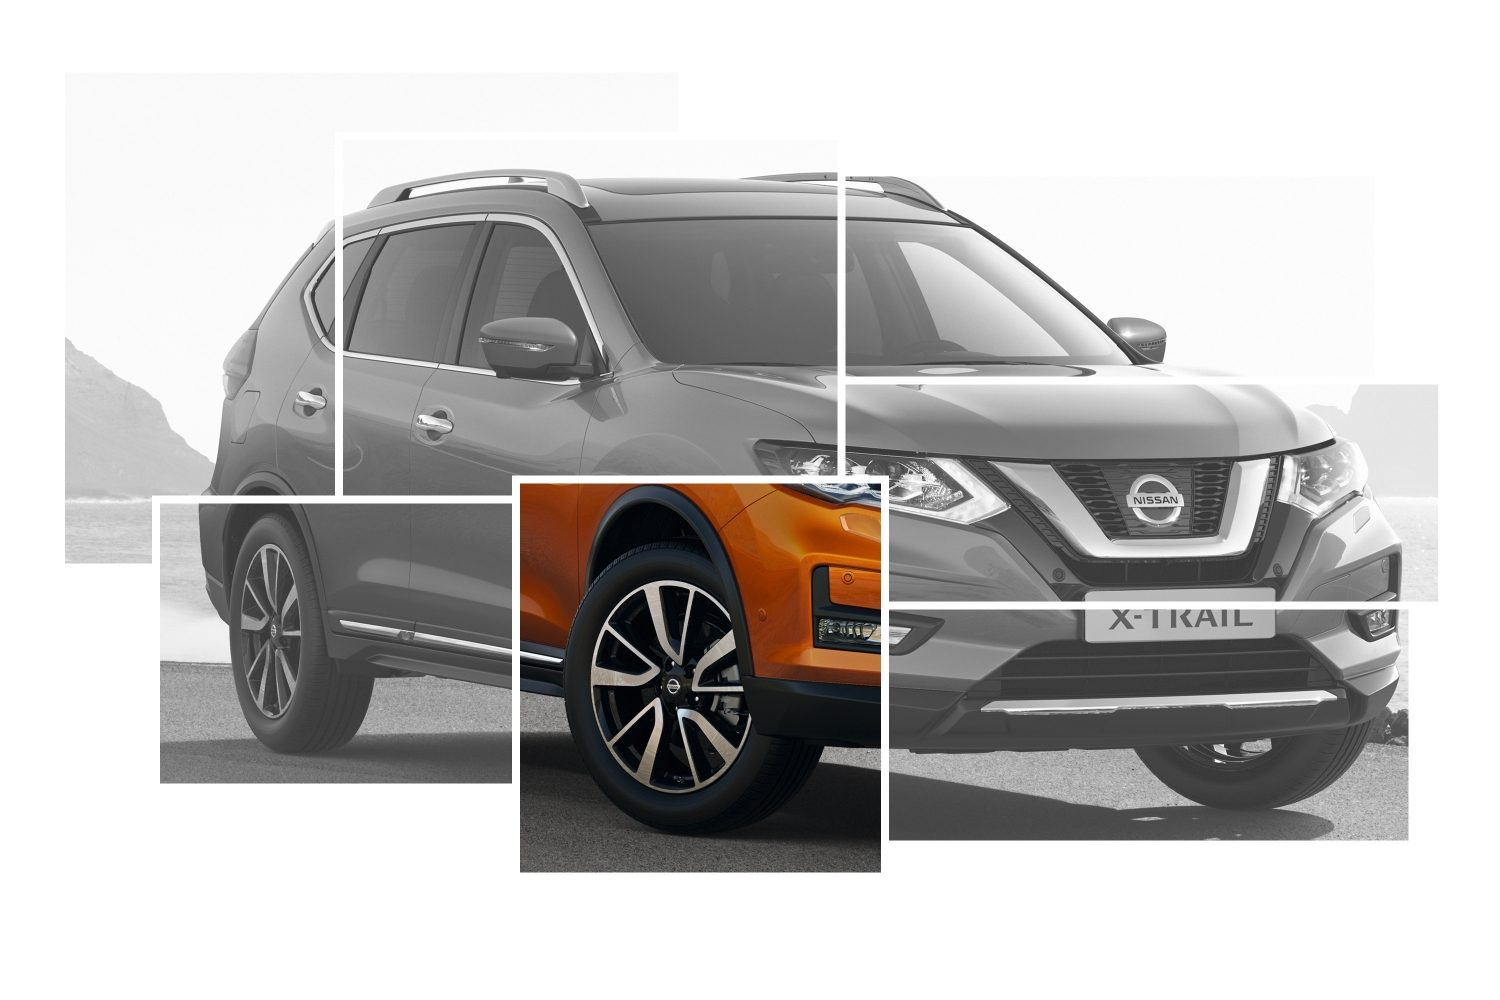 design nouveau nissan x trail 4x4 crossover voiture 7 places nissan. Black Bedroom Furniture Sets. Home Design Ideas